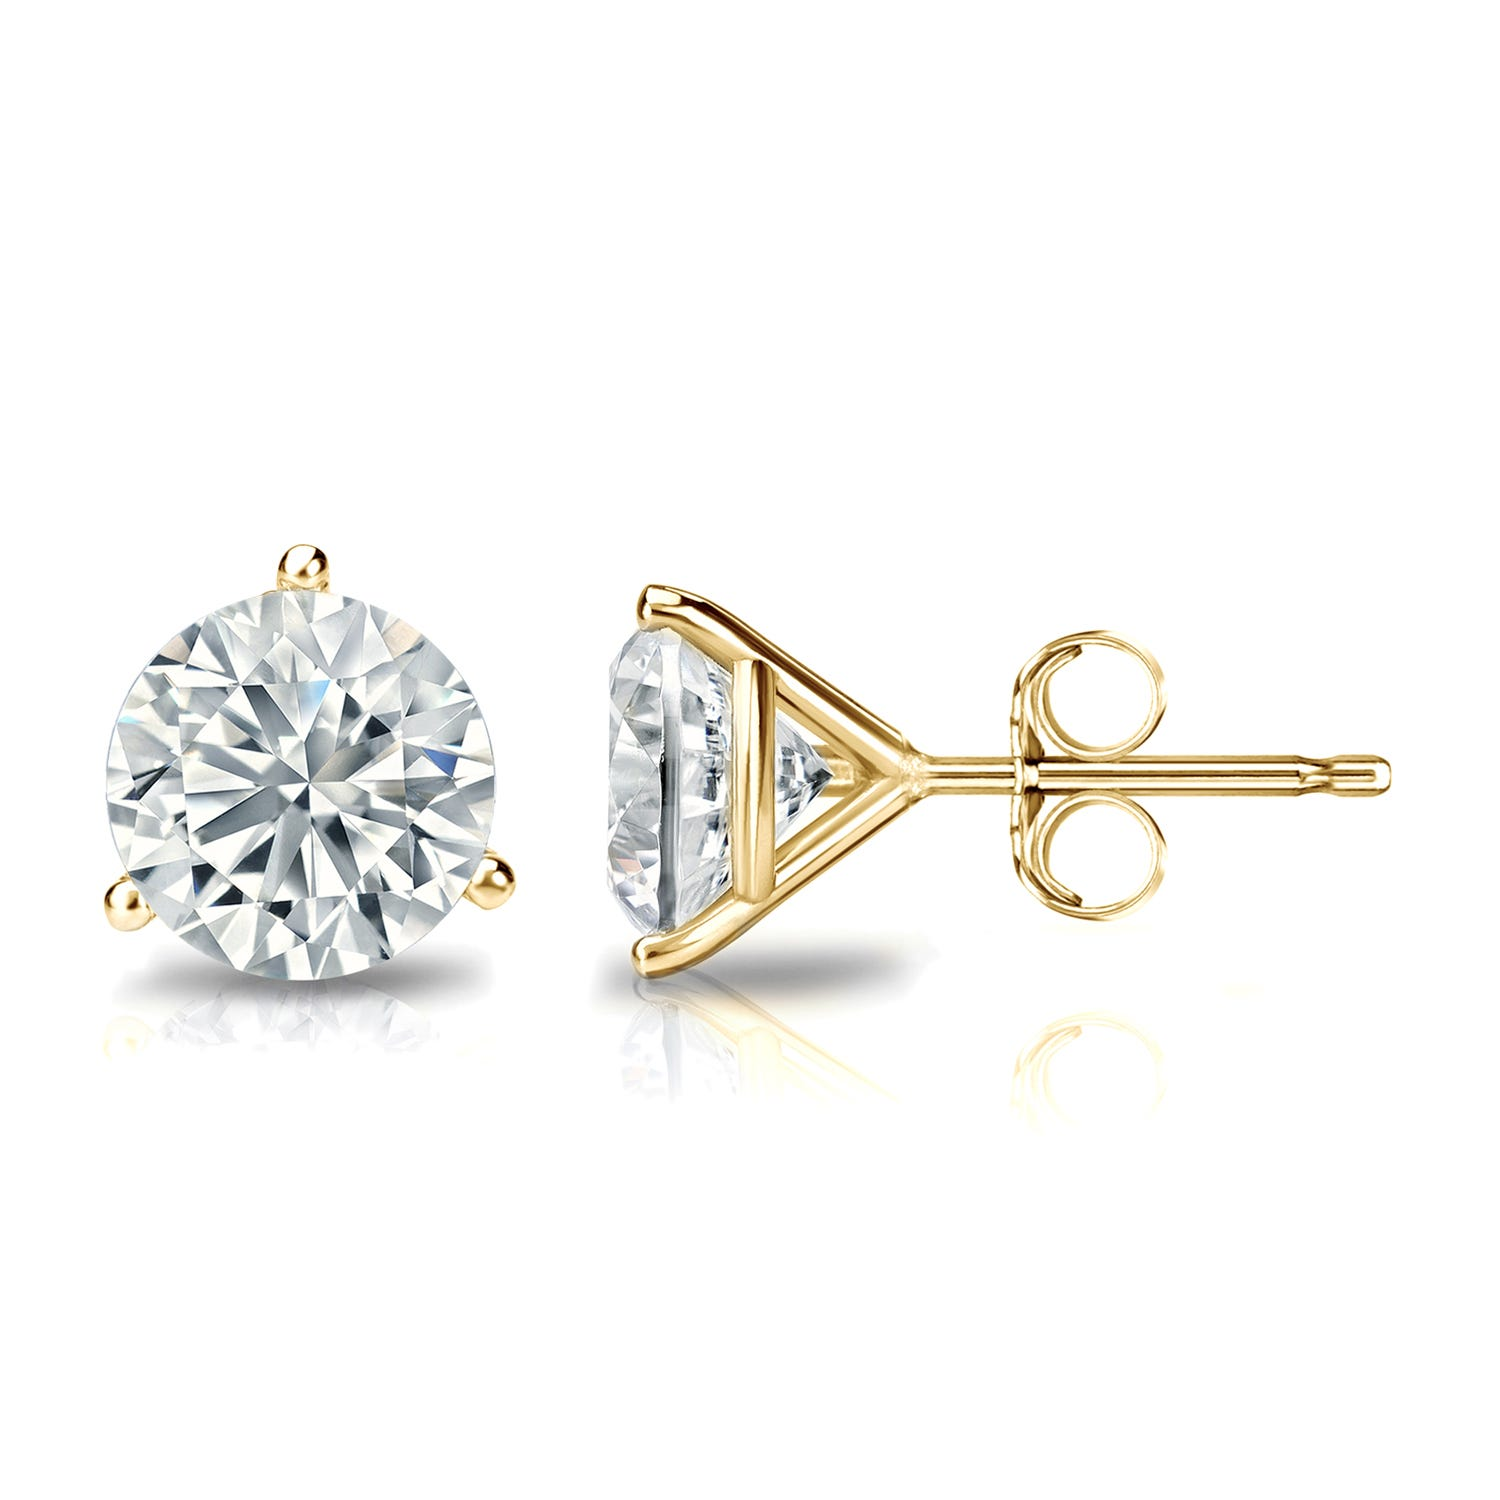 1-1/2 CTTW Round Diamond Solitaire Stud Earrings IJ VS2in 18K Yellow Gold IGI Certified 3-Prong Setting